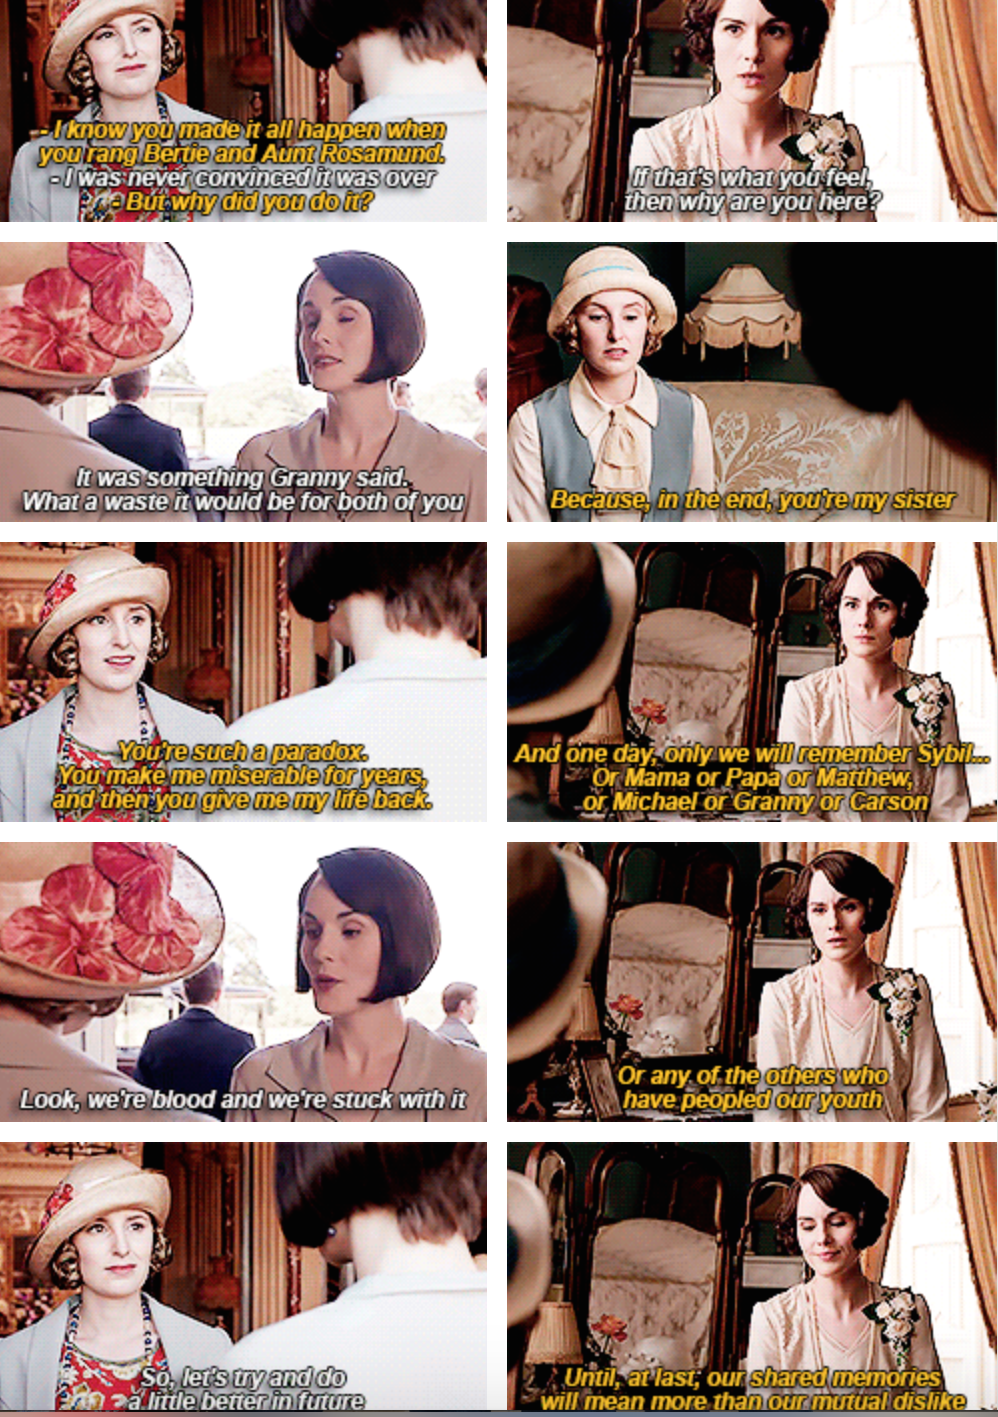 829b6971c23a 3 15 17 12 24a   Downton Abbey  Lady Mary Crawley Talbot and Lady ...